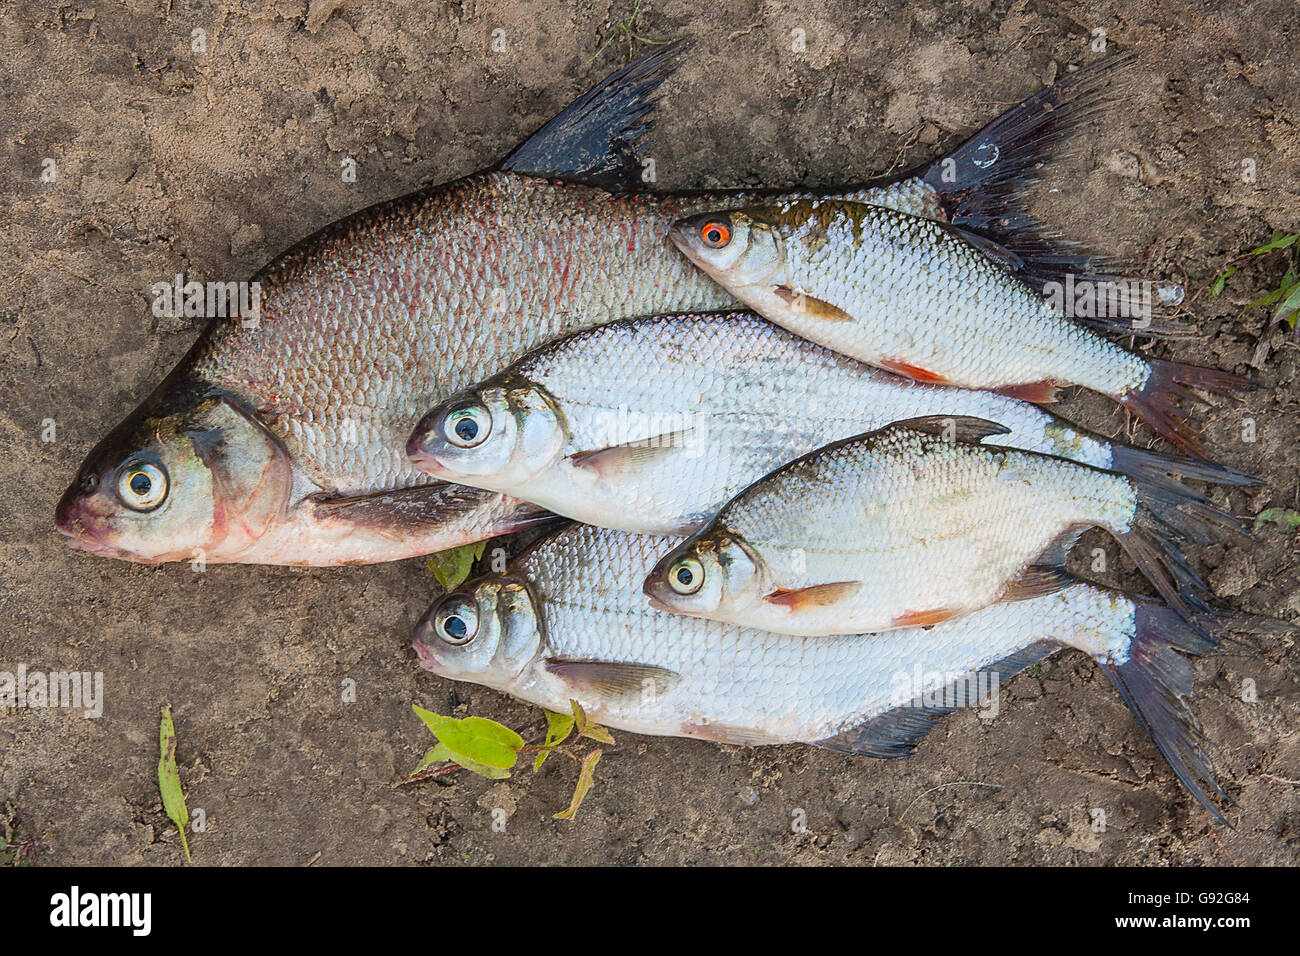 Freshwater fish bream - Freshwater Fish Just Taken From The Water Several Bream Fish And Silver Bream Or White Bream On Natural Background